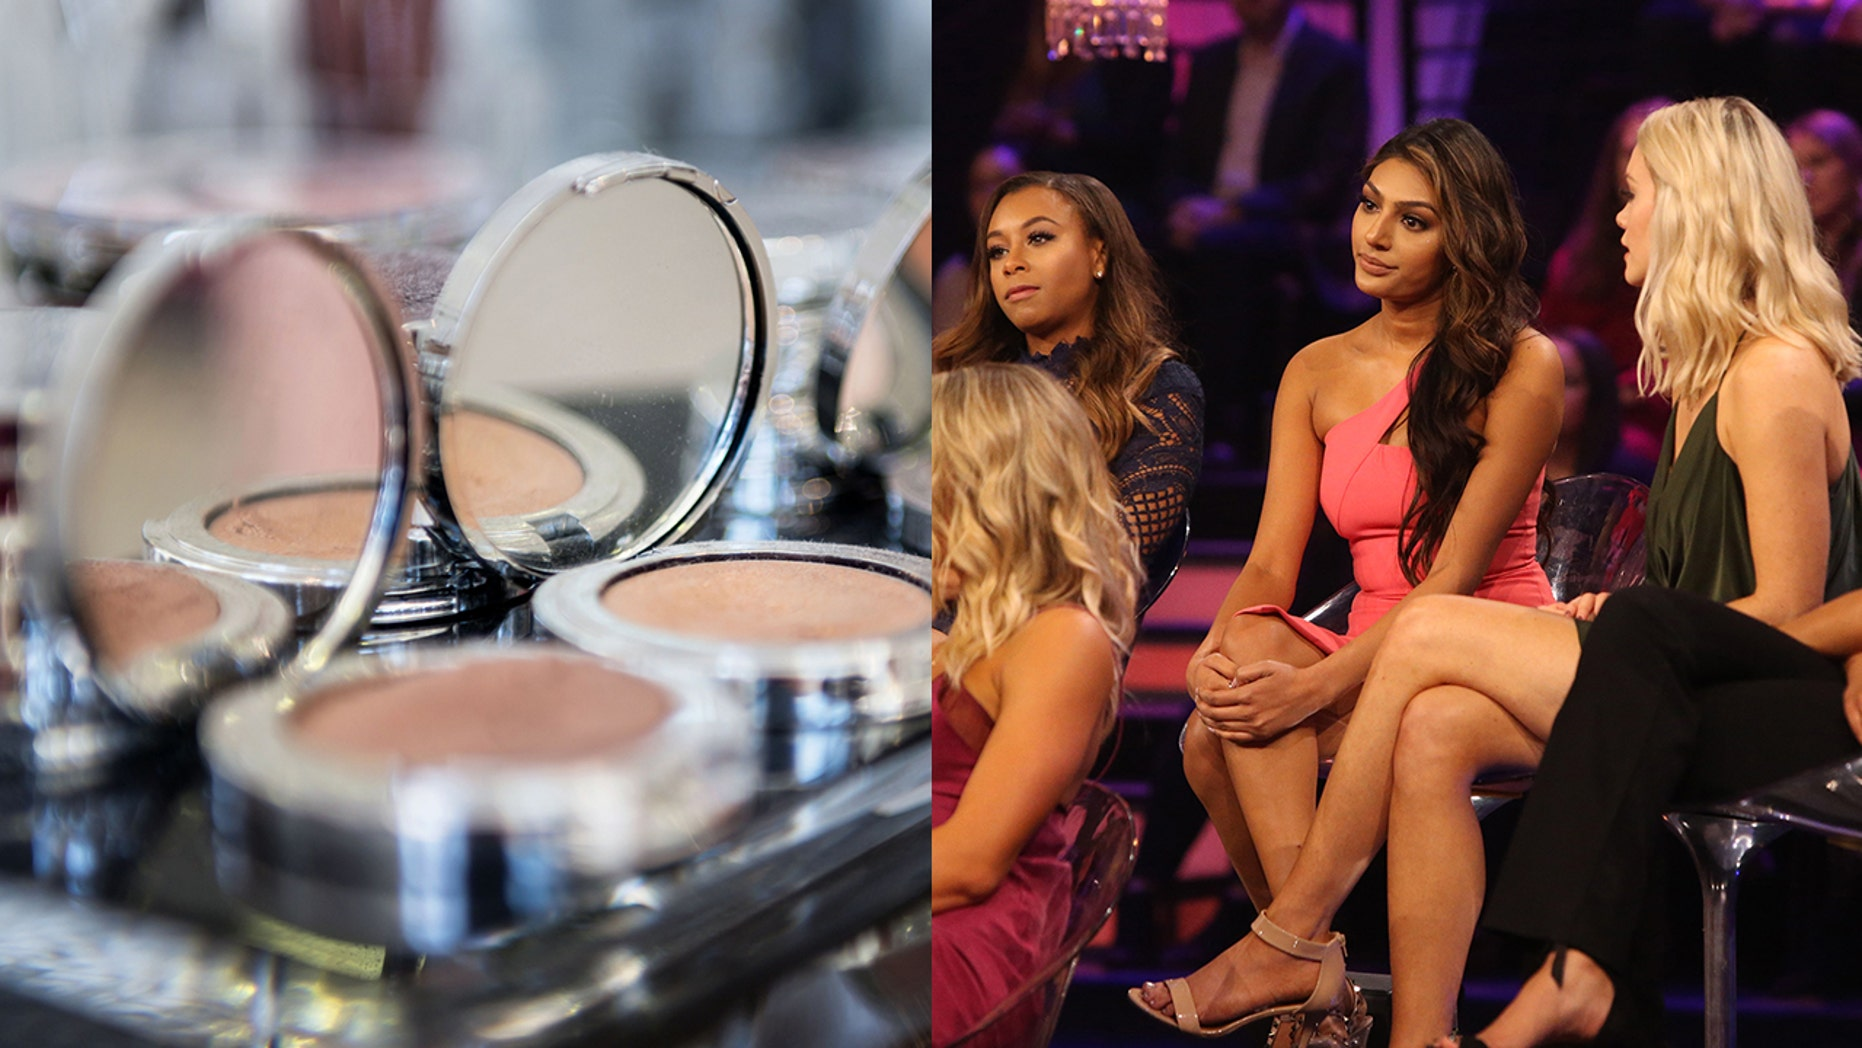 """The Internet has been debating, and sometimes bemoaning, the issue of """"glam-shaming"""" after a """"Bachelor"""" contestant coined the term earlier this season."""